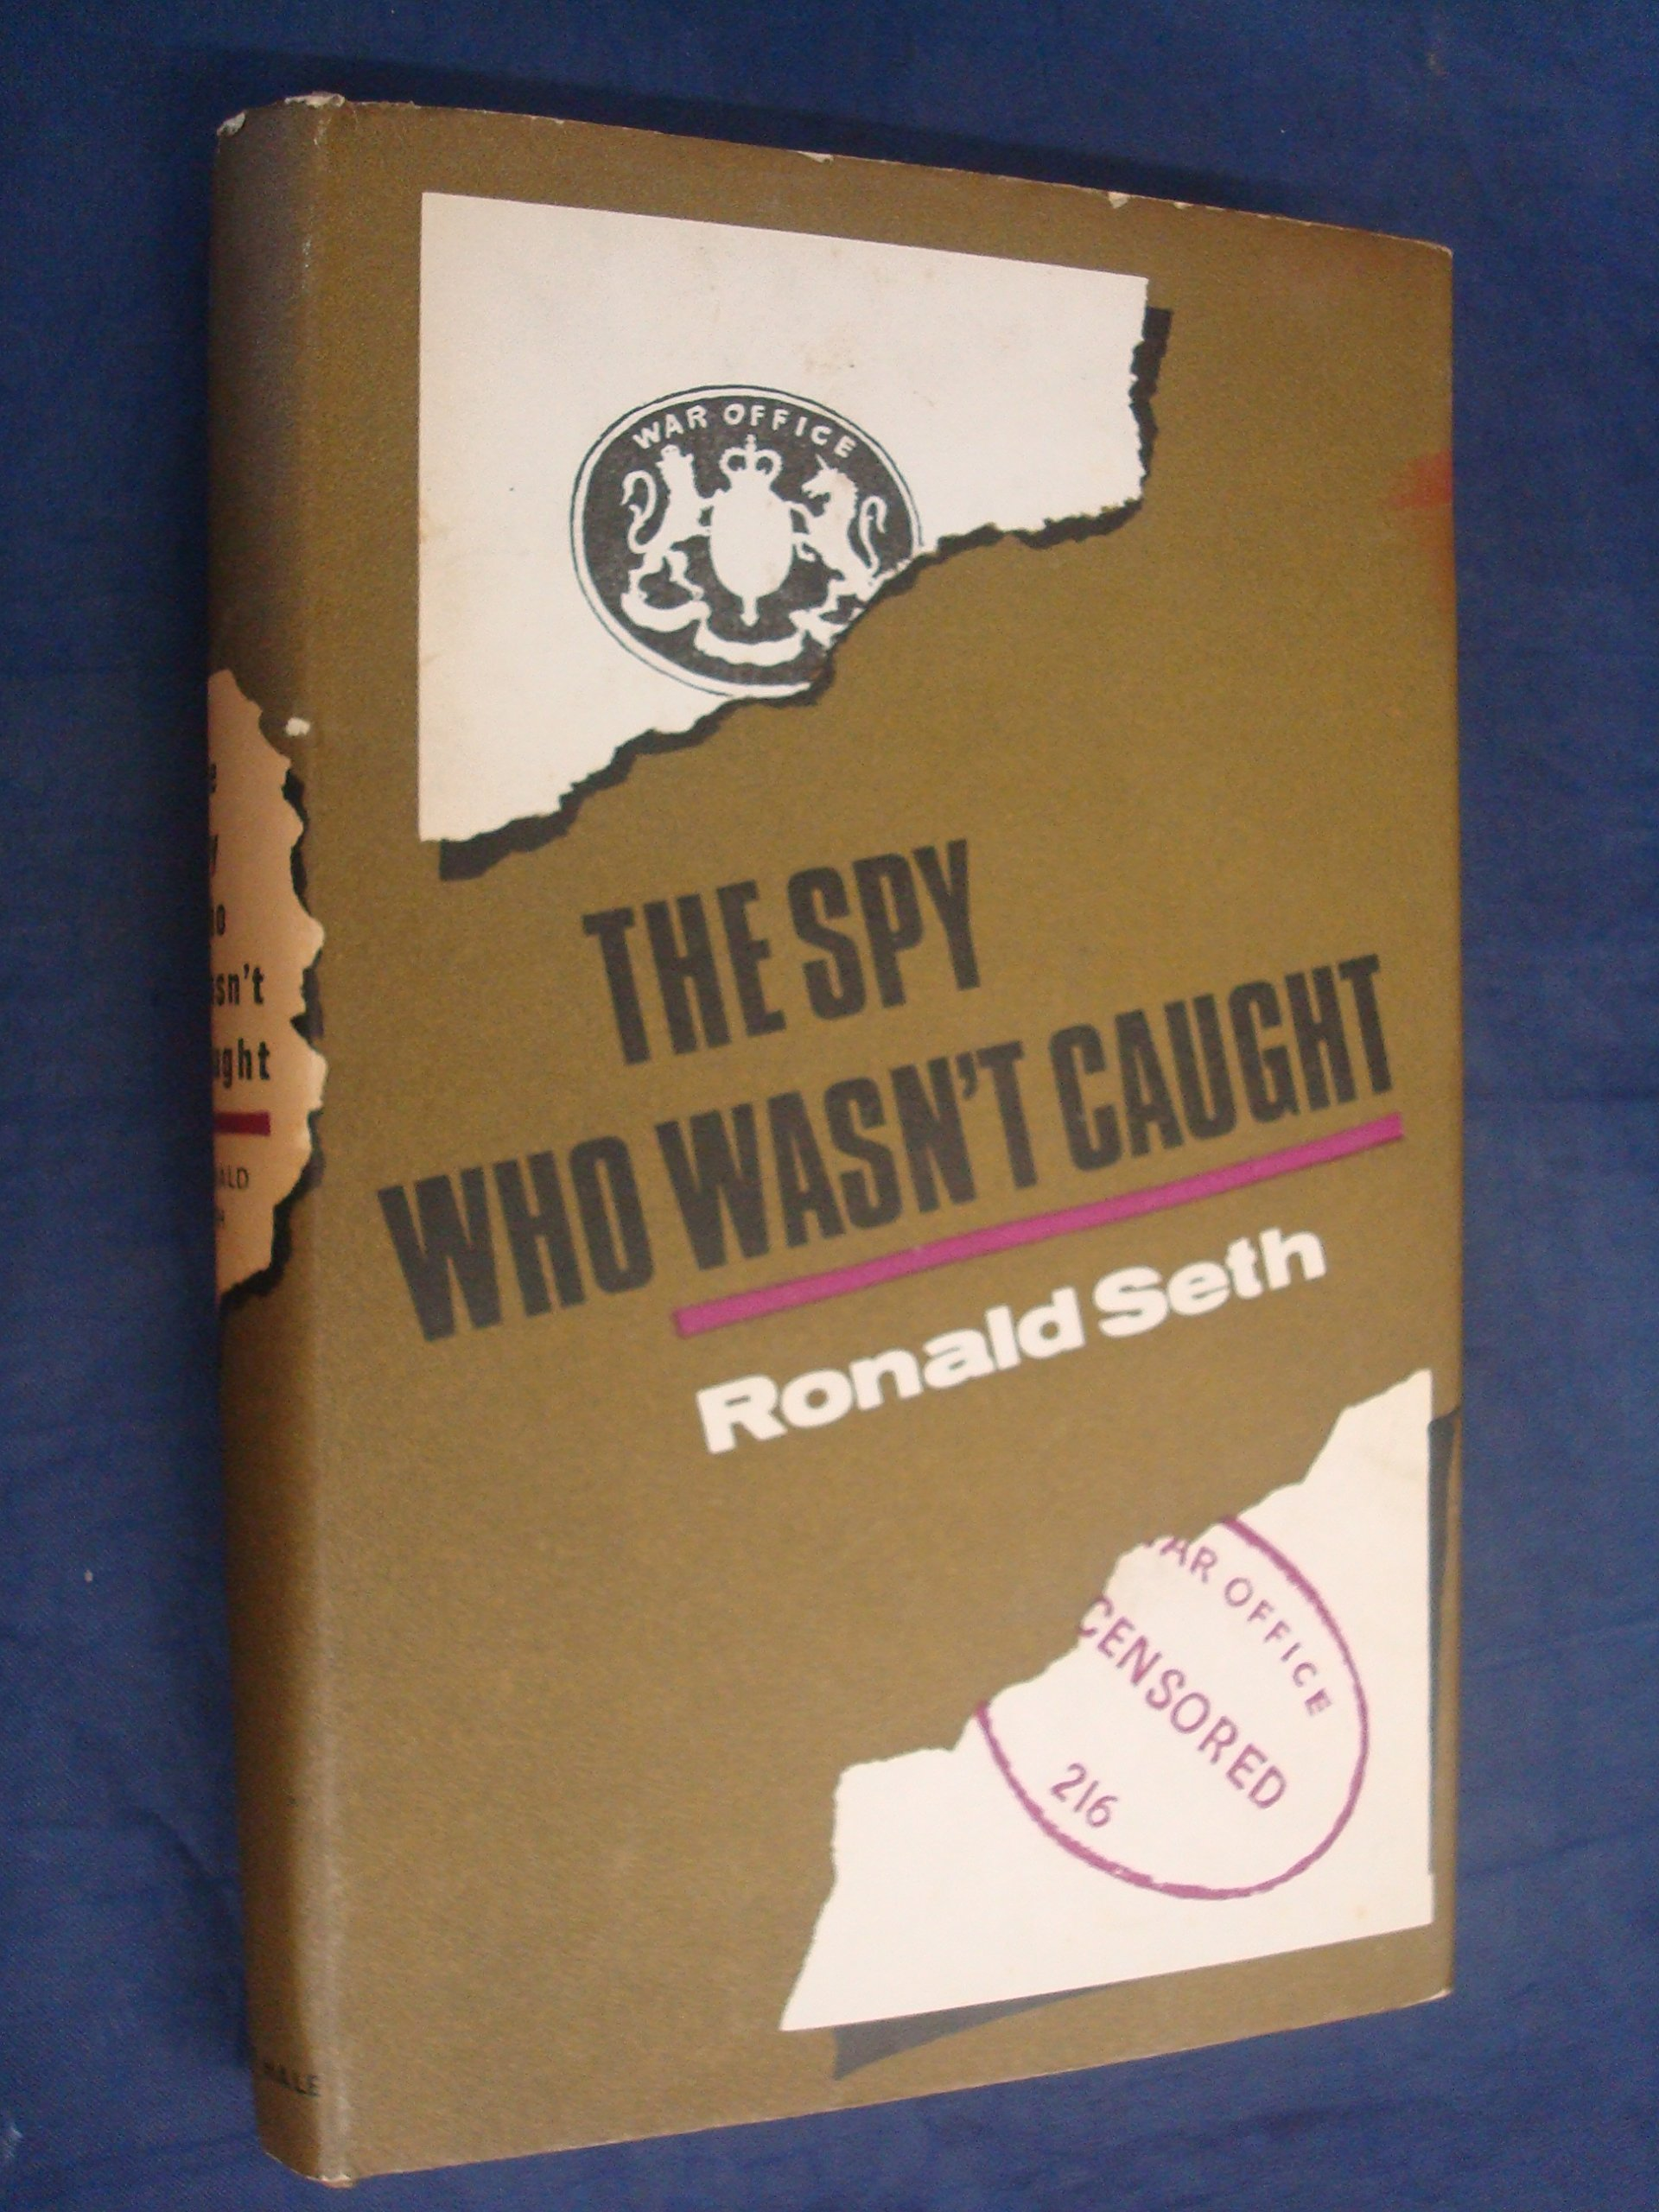 The spy who wasn't caught: the story of Julius Silber